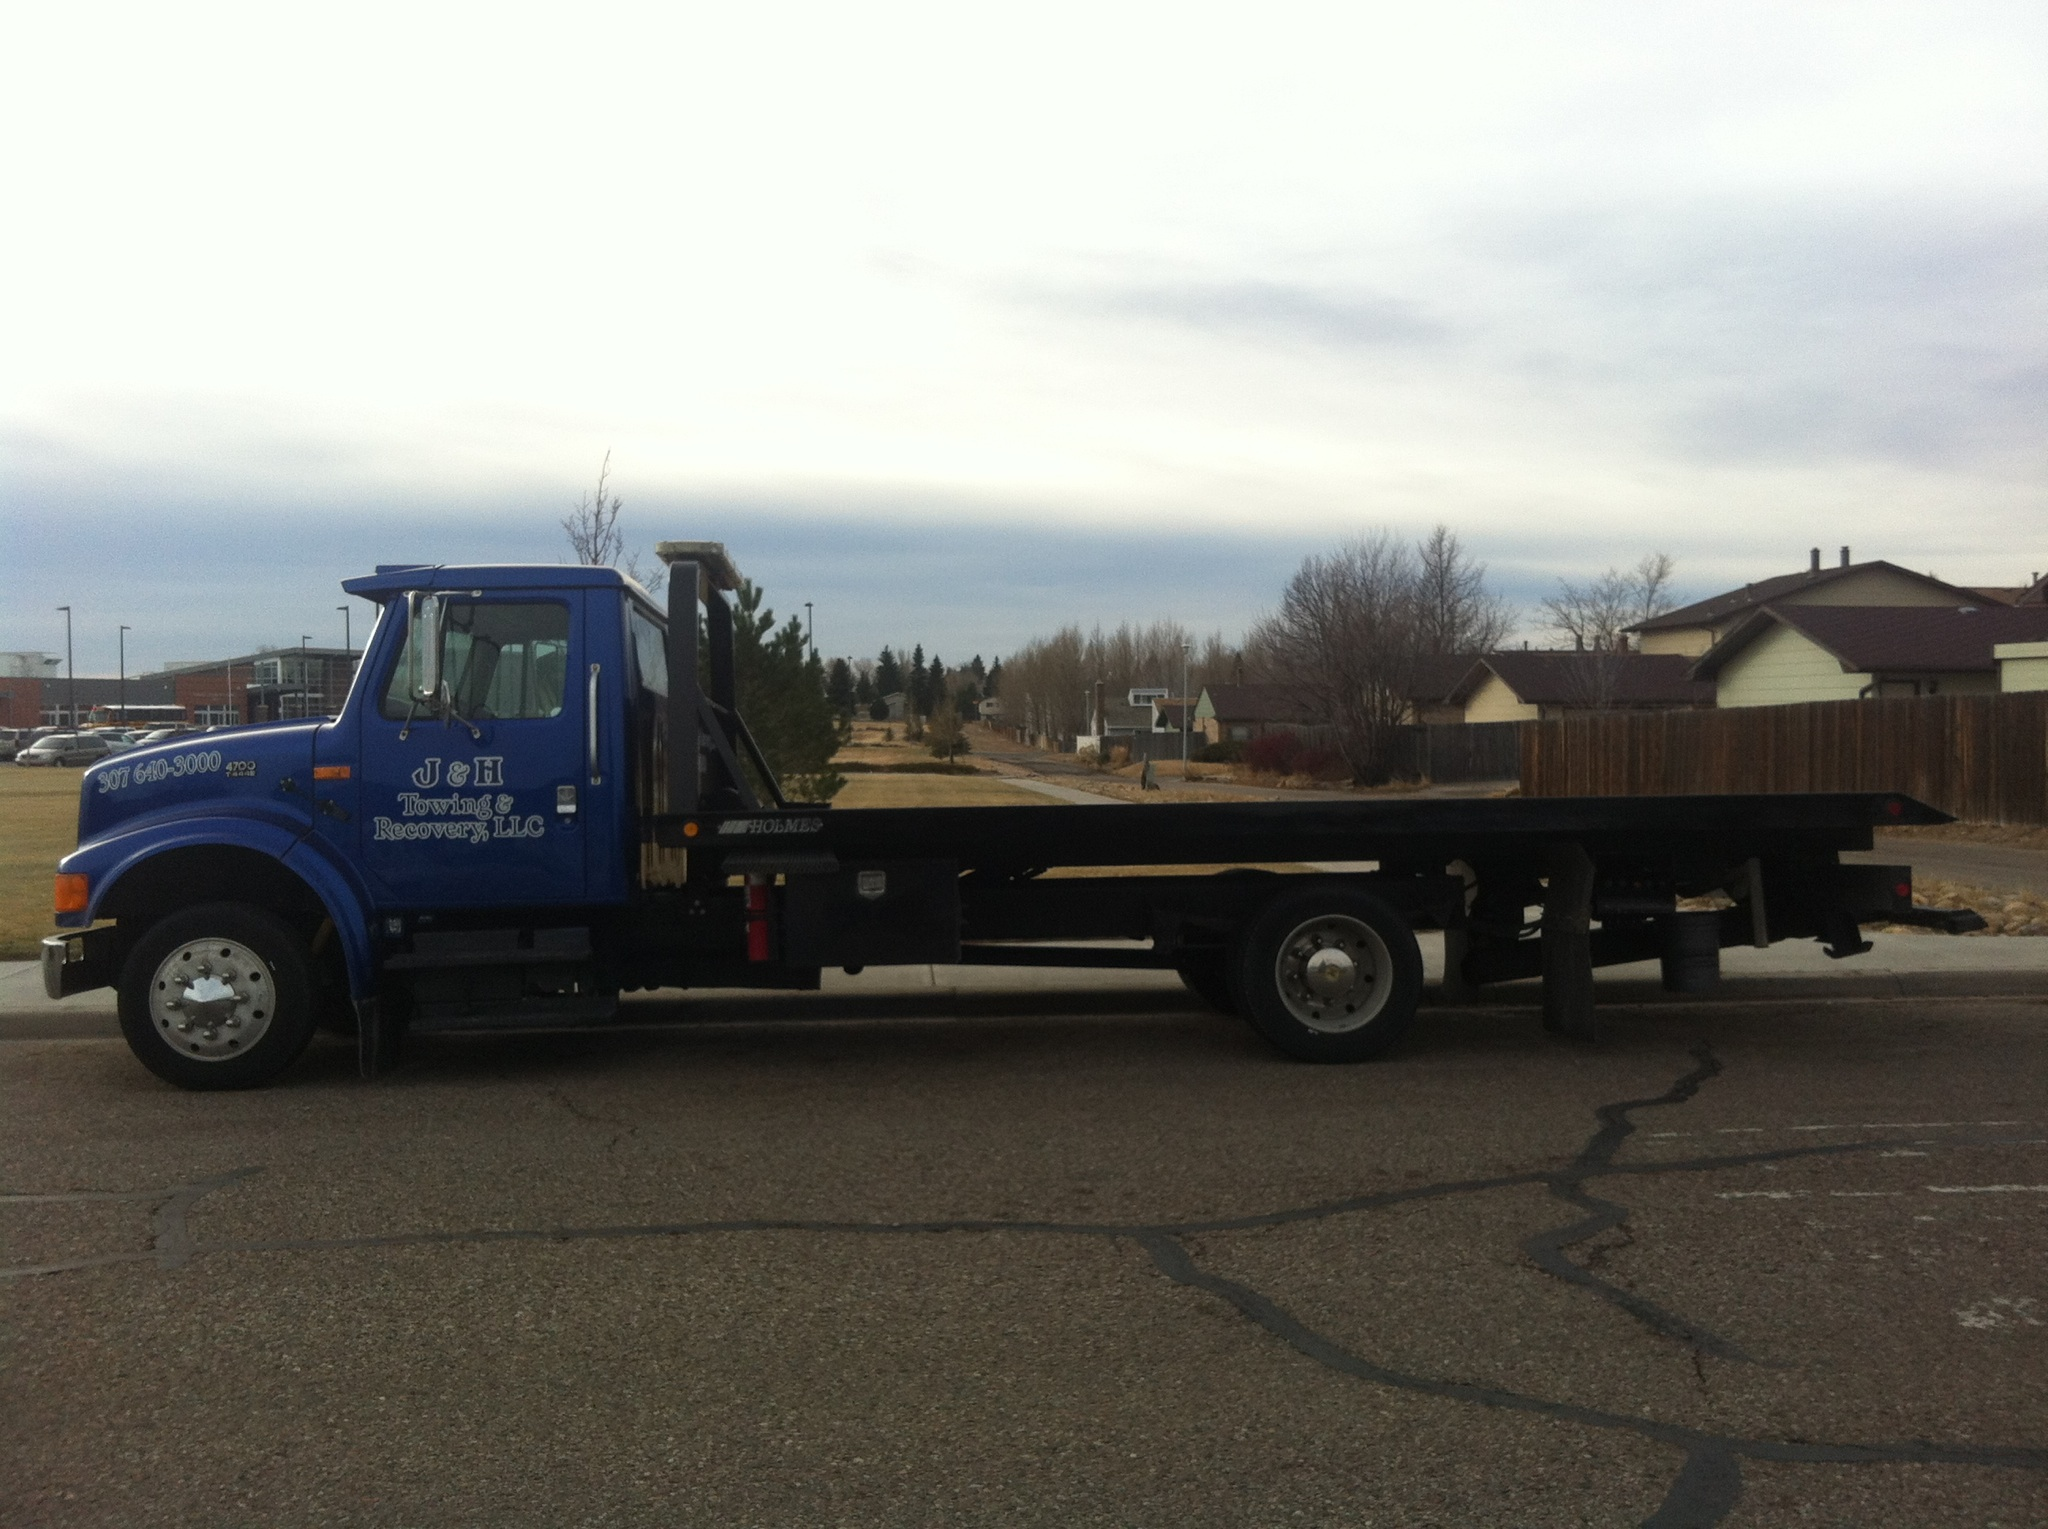 J Amp H Towing Amp Recovery Llc 7508 Tate Road Lot 2 Cheyenne